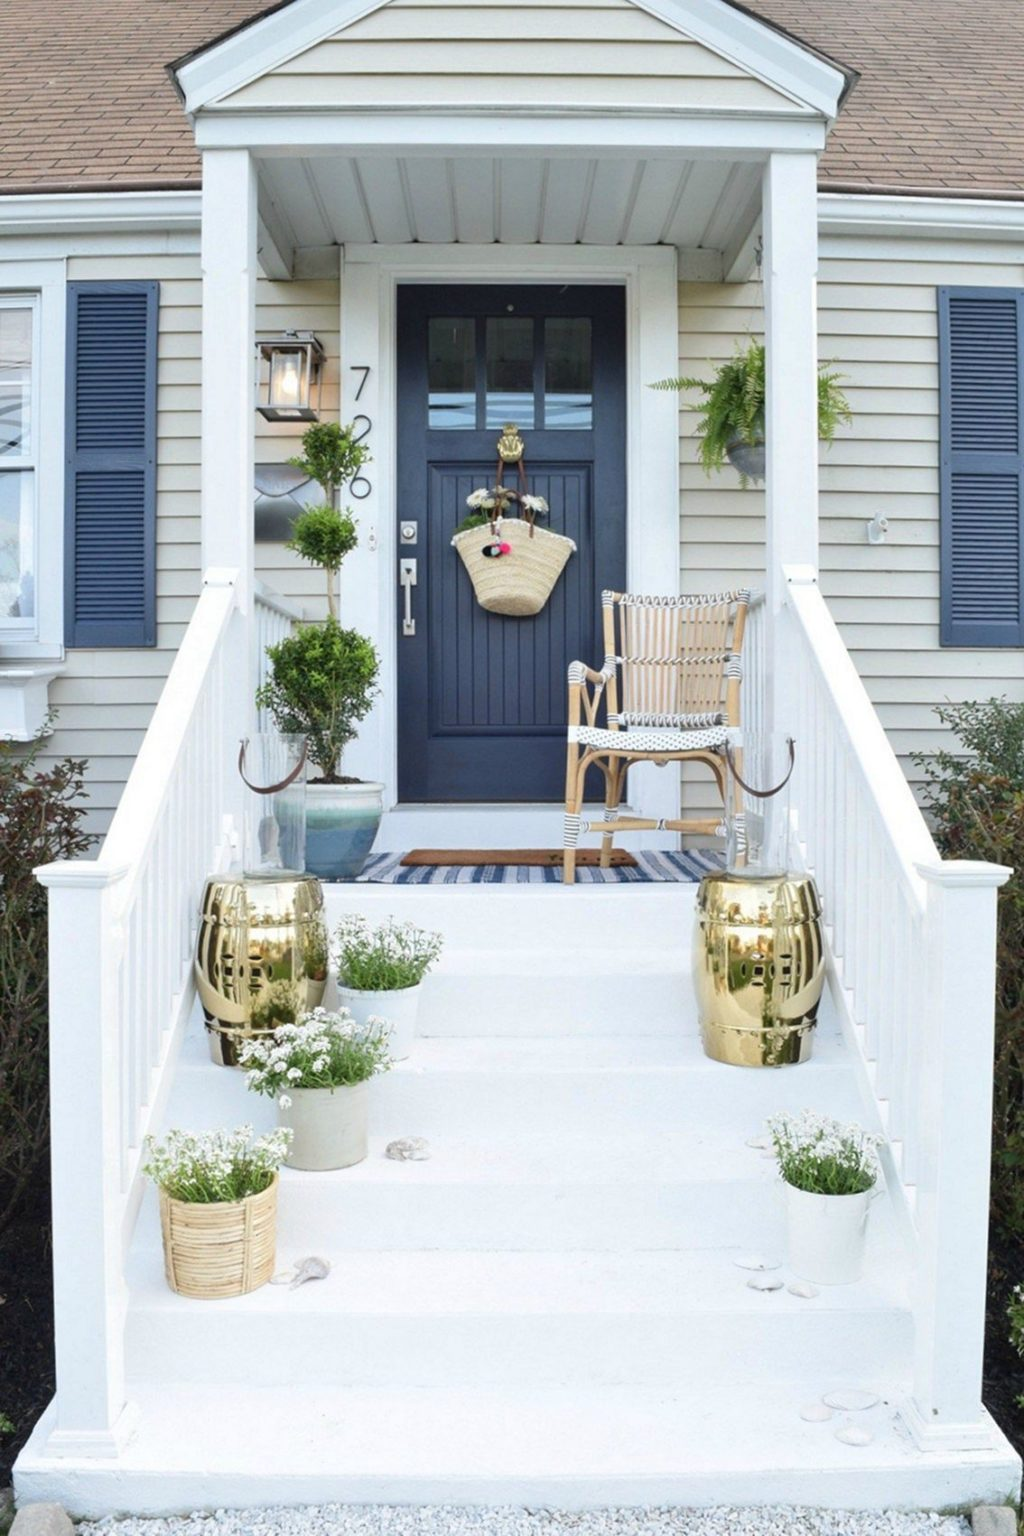 15 Porch Design Ideas That Will Have You Outside All Summer Long ☀️ porch design ideas 15 Porch Design Ideas That Will Have You Outside All Summer Long ☀️ 8 2